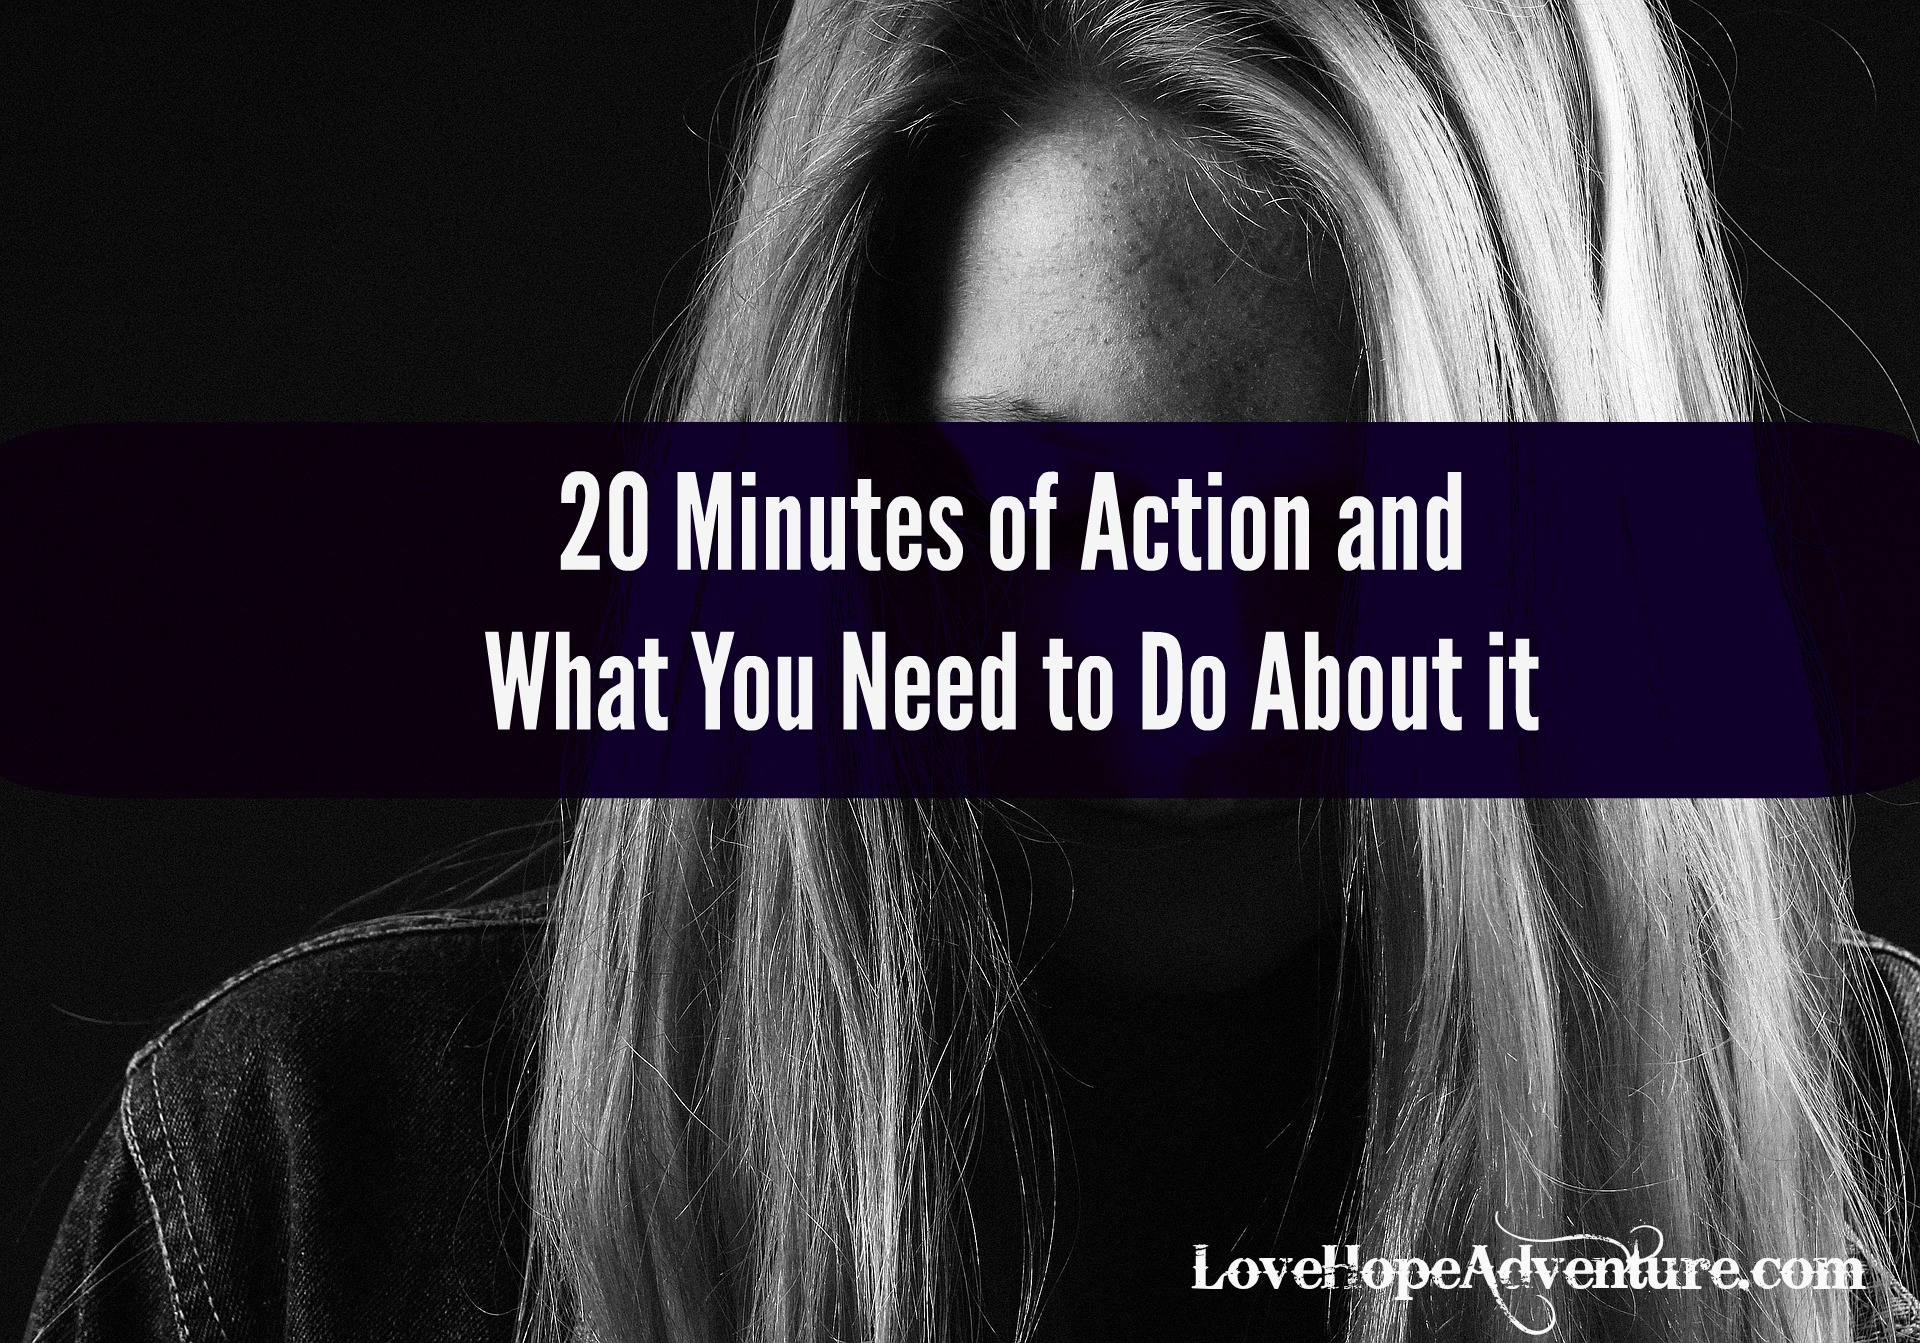 2o Minutes of Action and What You Need to Do About It